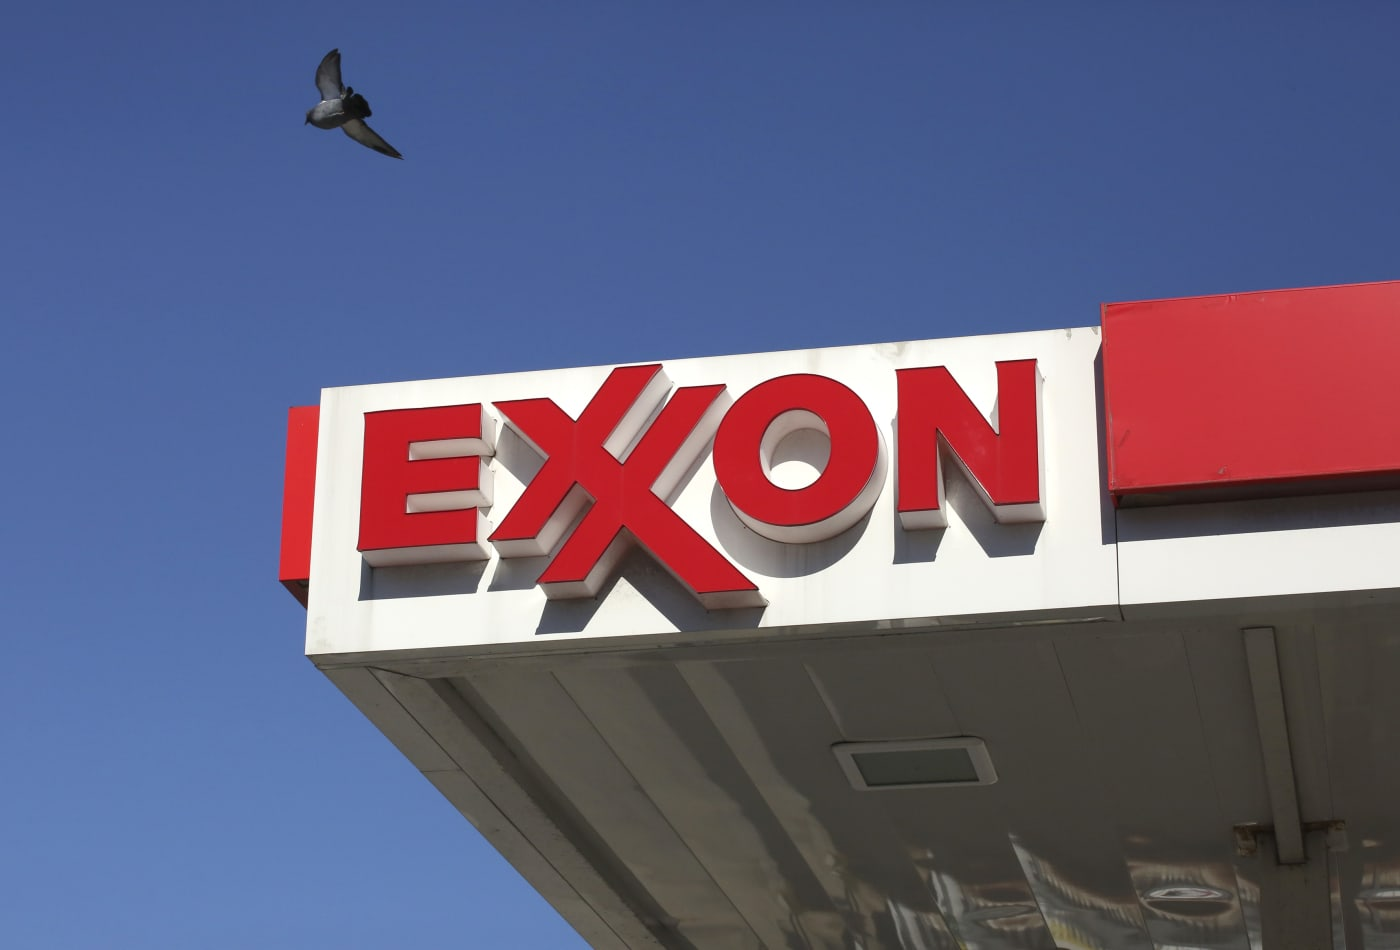 TD Ameritrade strategist explains why millennial investors have been buying ExxonMobil